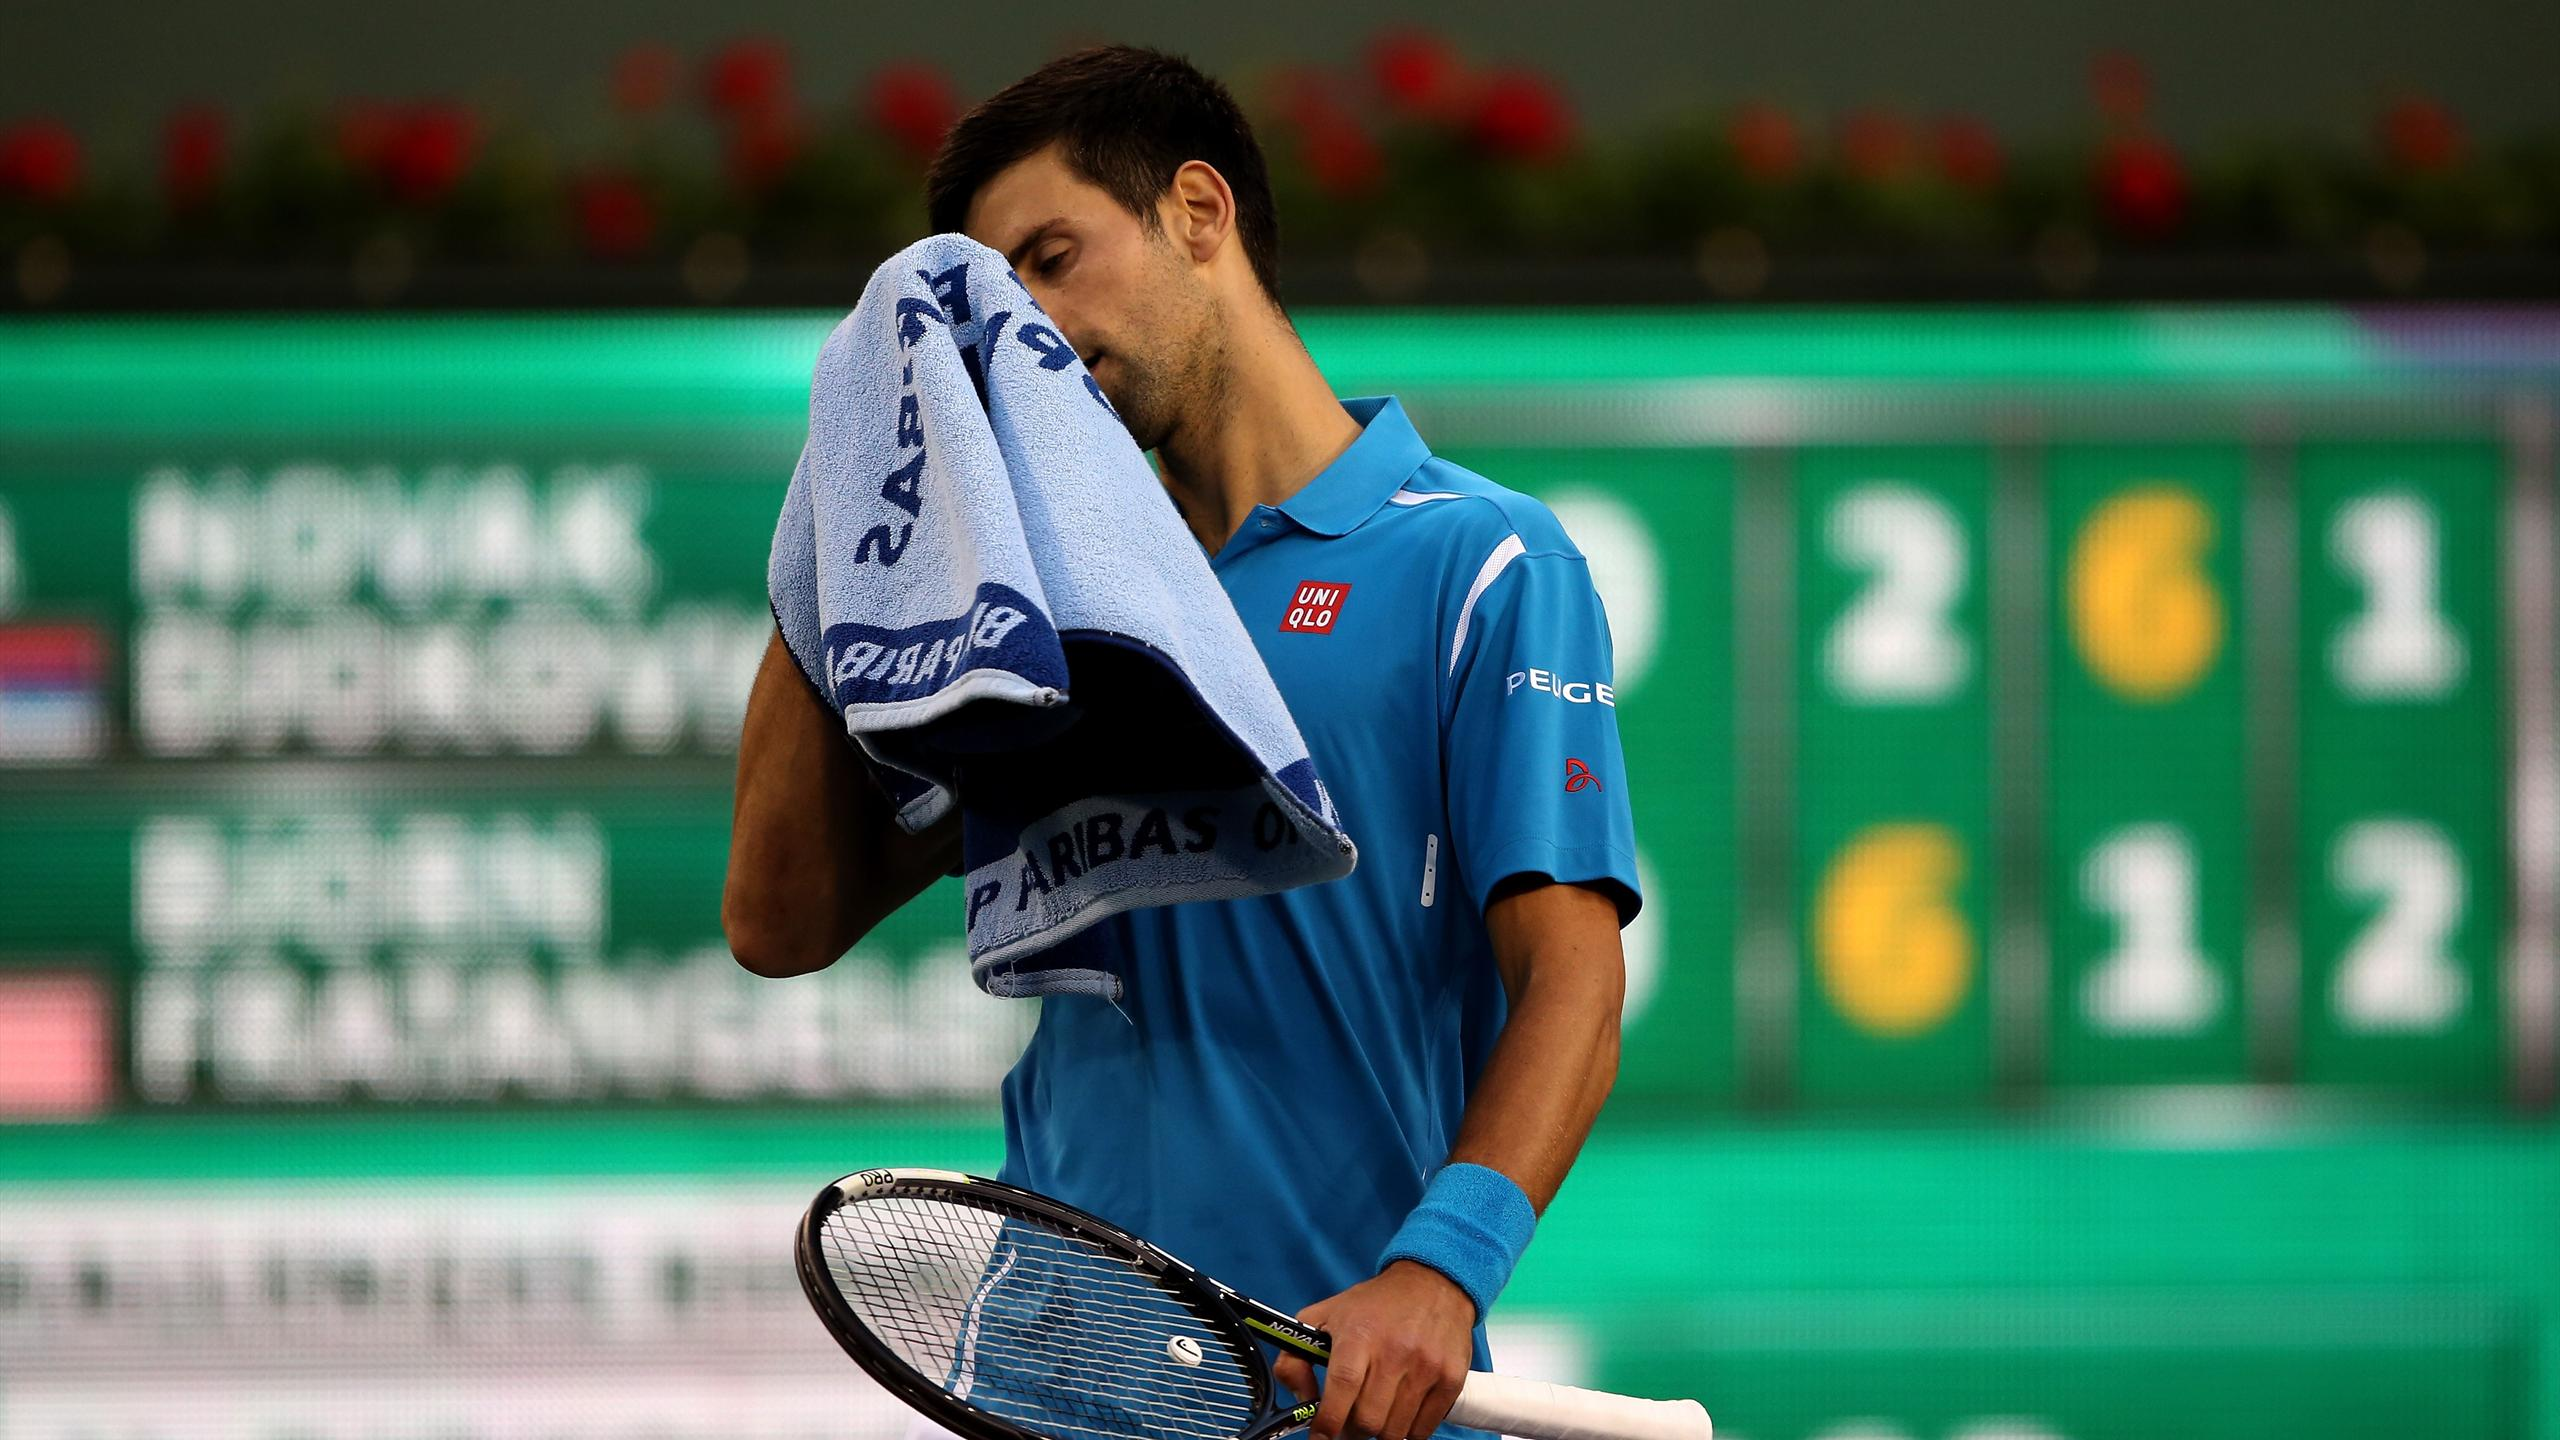 Novak Djokovic en difficulté pour son entrée en lice à indian Wells 2016